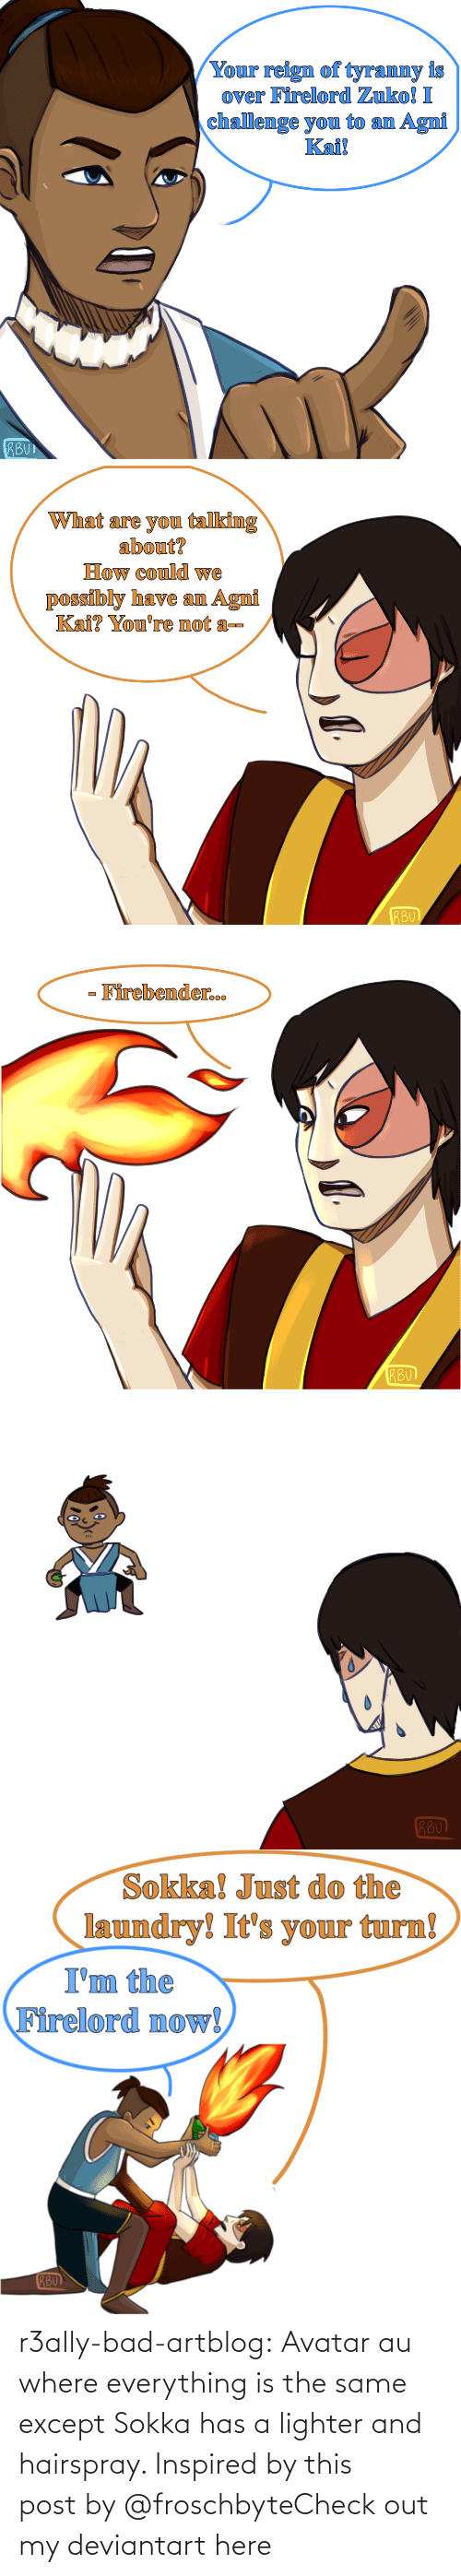 new: r3ally-bad-artblog:  Avatar au where everything is the same except Sokka has a lighter and hairspray. Inspired by this post by @froschbyteCheck out my deviantart here